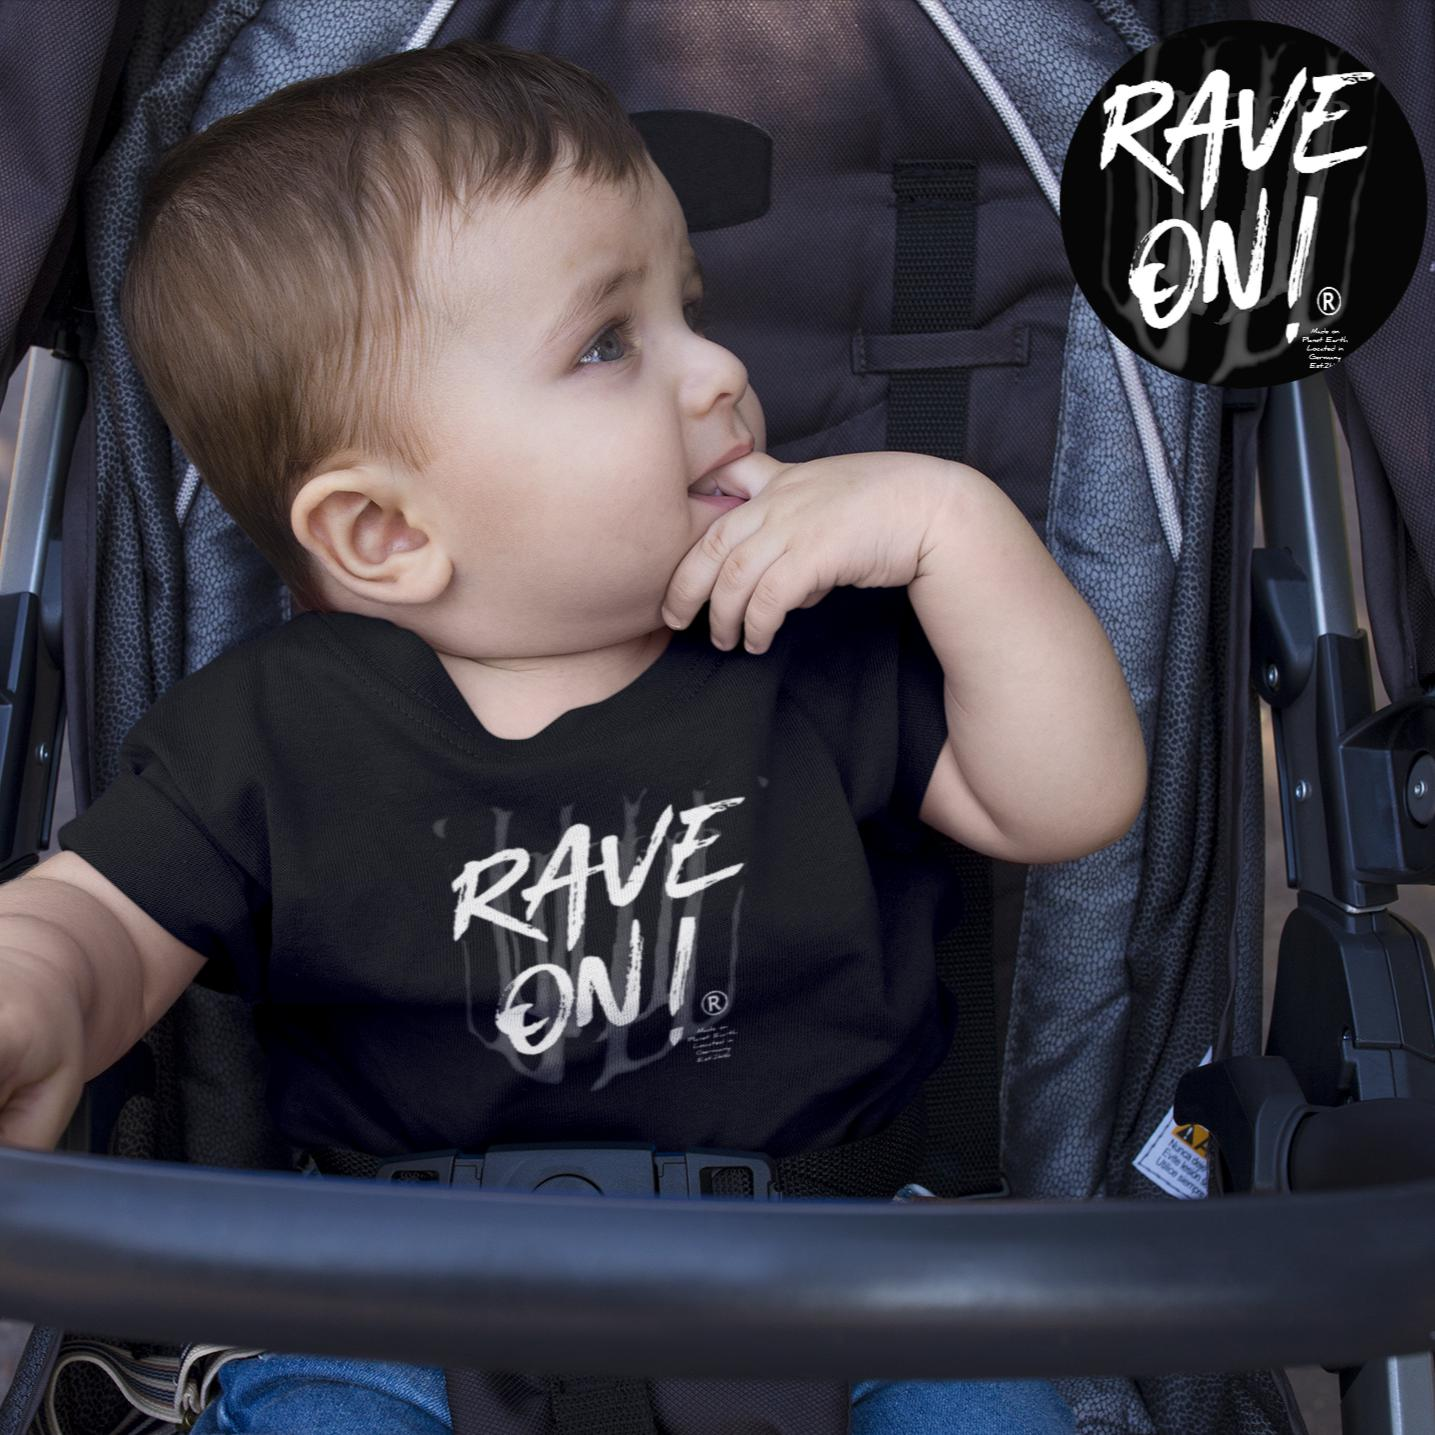 Rave On!® - B2k20 Baby Strampler - Baby Body Baby Strampler - Rave On!® der Club & Techno Szene Shop für Coole Junge Mode Streetwear Style & Fashion Outfits + Sexy Festival 420 Stuff